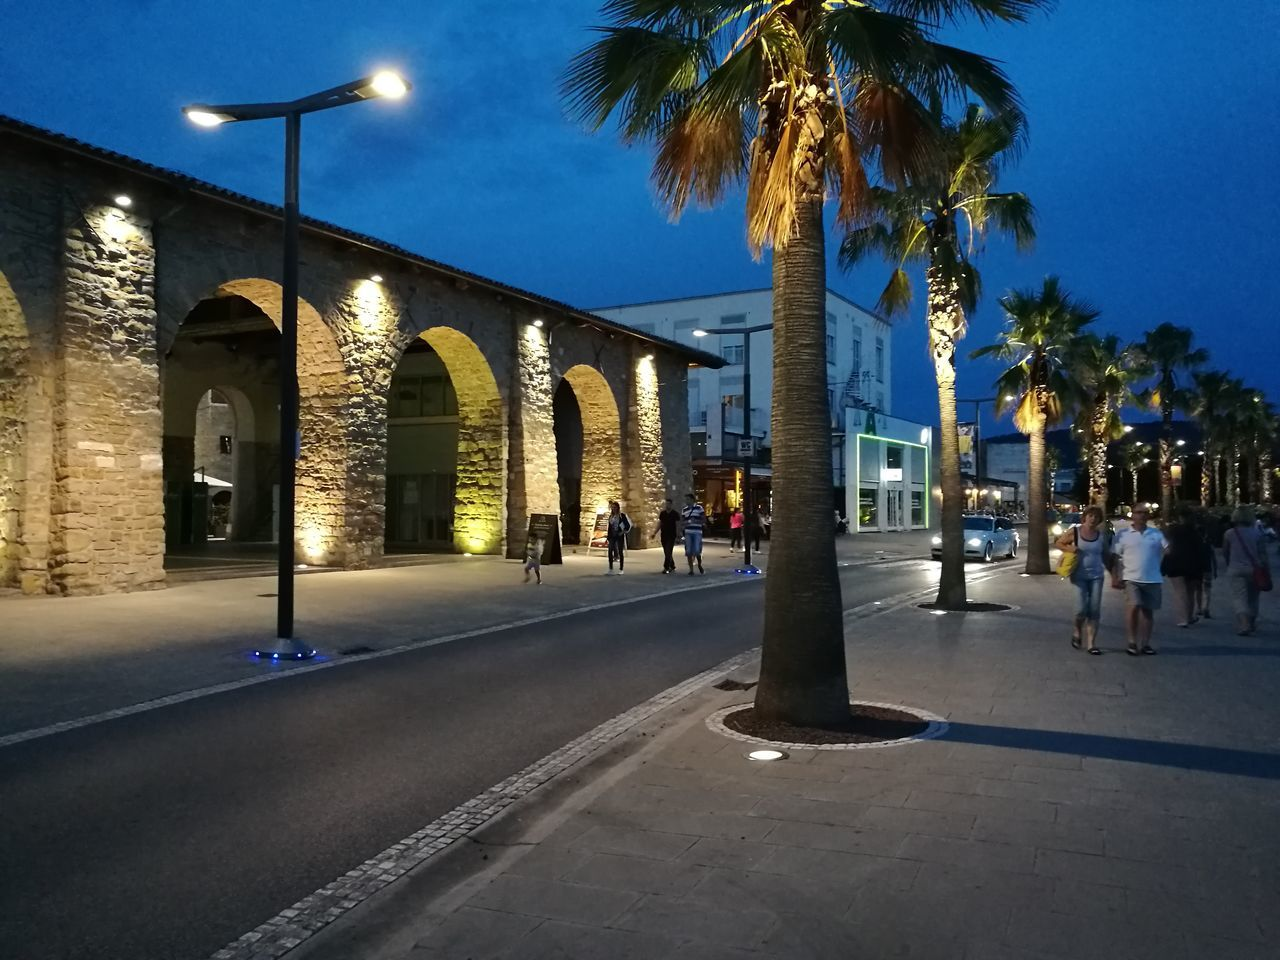 palm tree, illuminated, building exterior, architecture, built structure, street, tree, night, road, outdoors, sky, city, no people